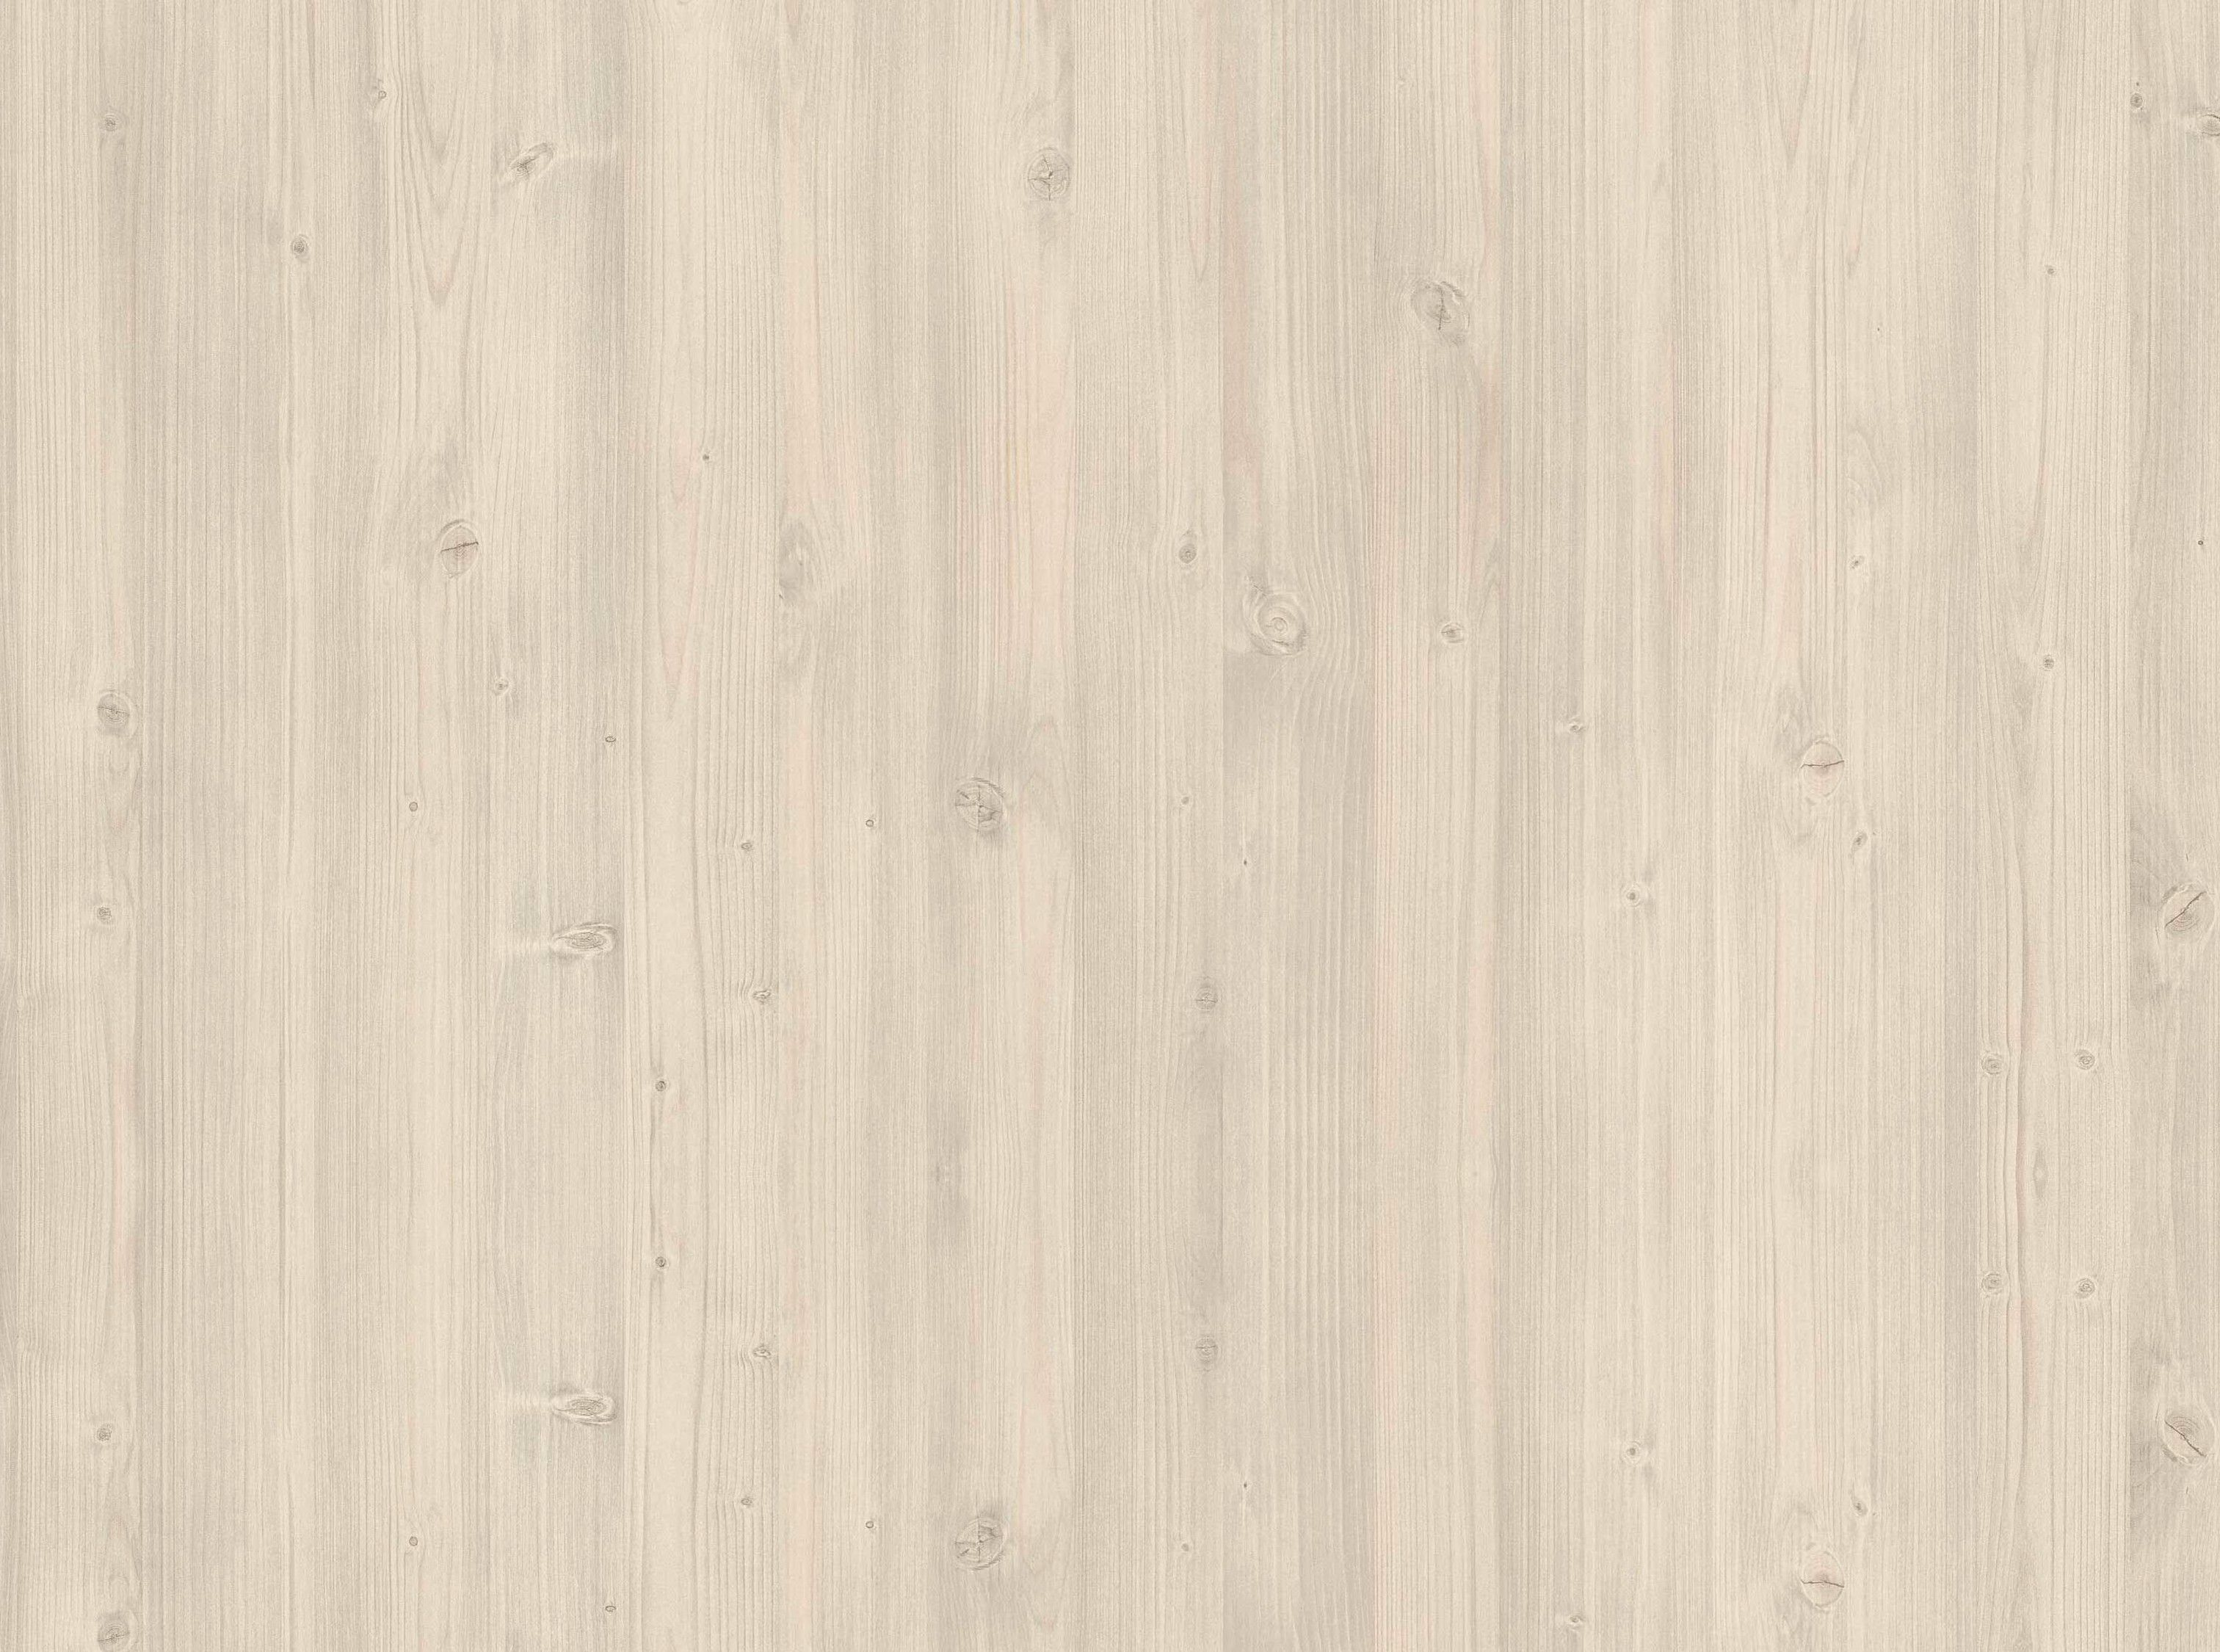 Teak Wood Kitchen Cabinets White Oak Texture Seamless Www Pixshark Com Images